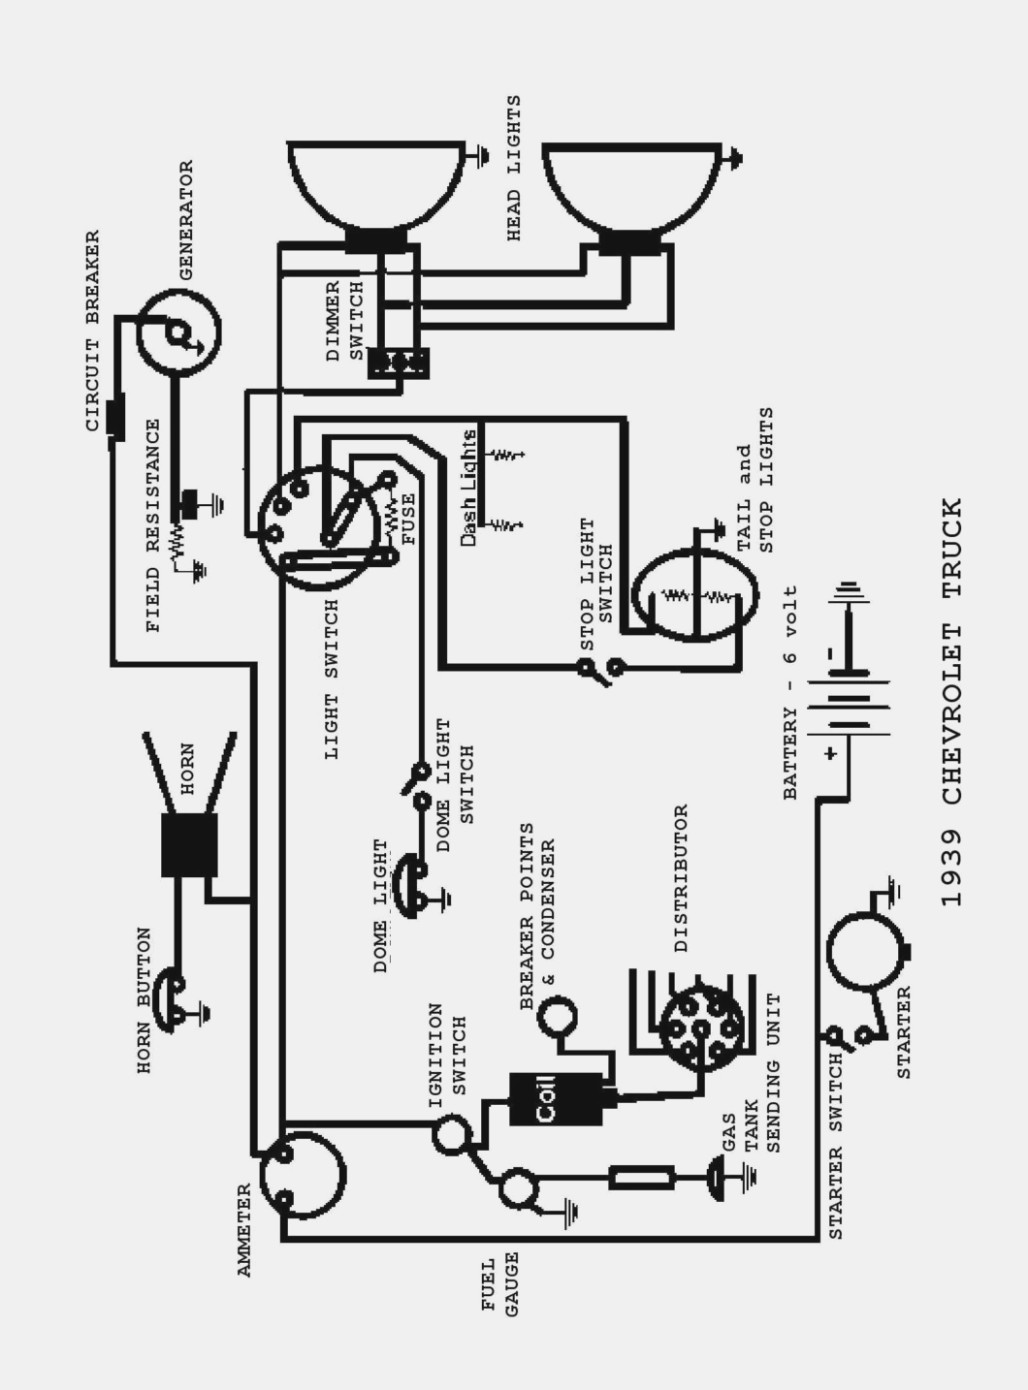 [SG_6746] International 4300 Wiring Diagram Wiring Diagram